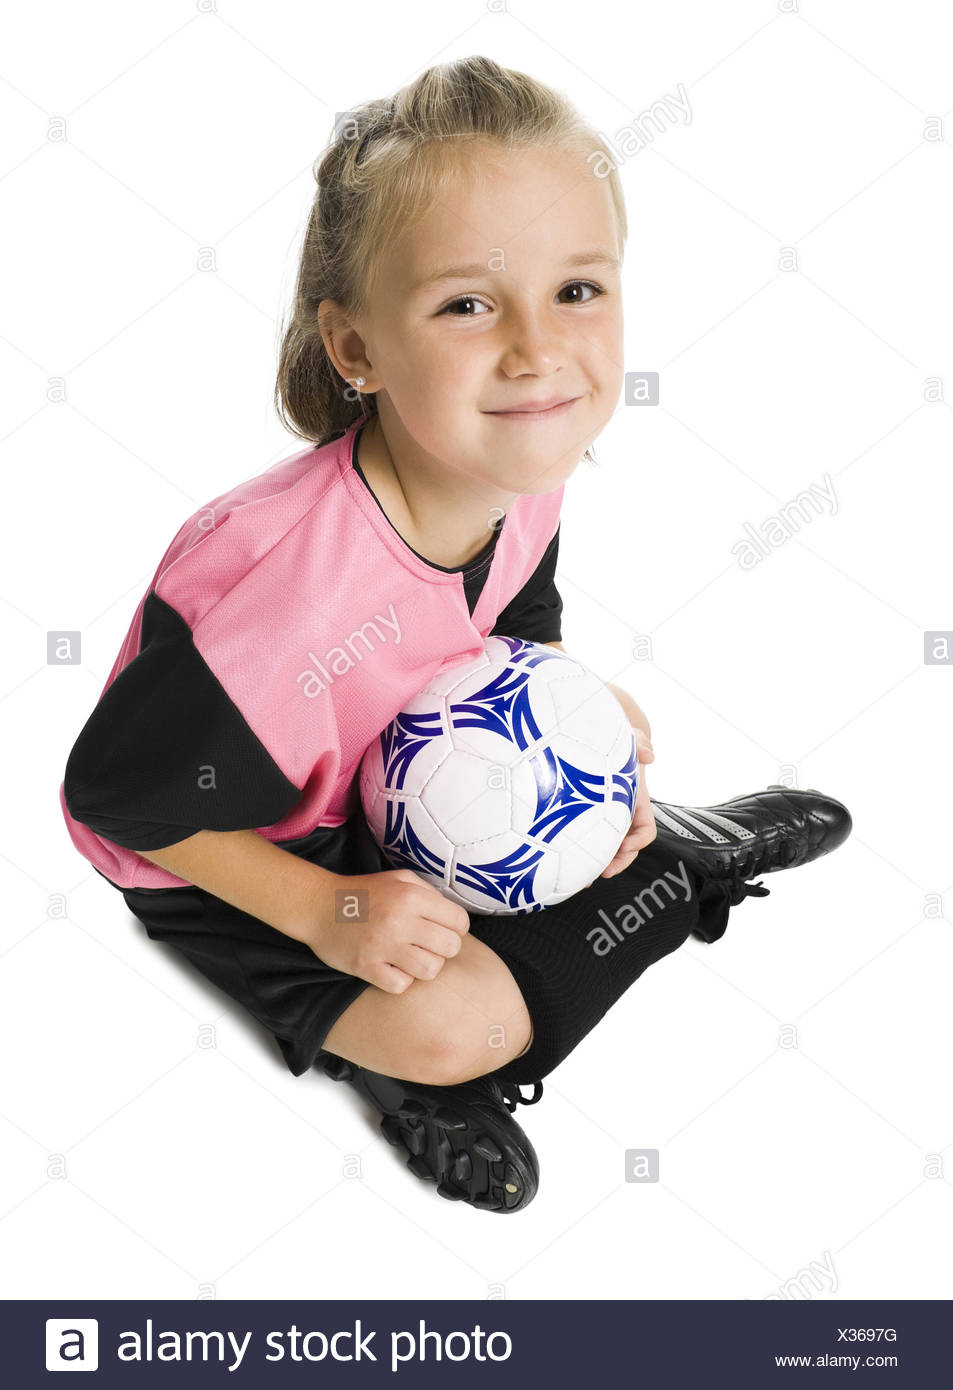 0e2fccfe6 Young girl in a soccer uniform with ball Stock Photo  277348836 - Alamy